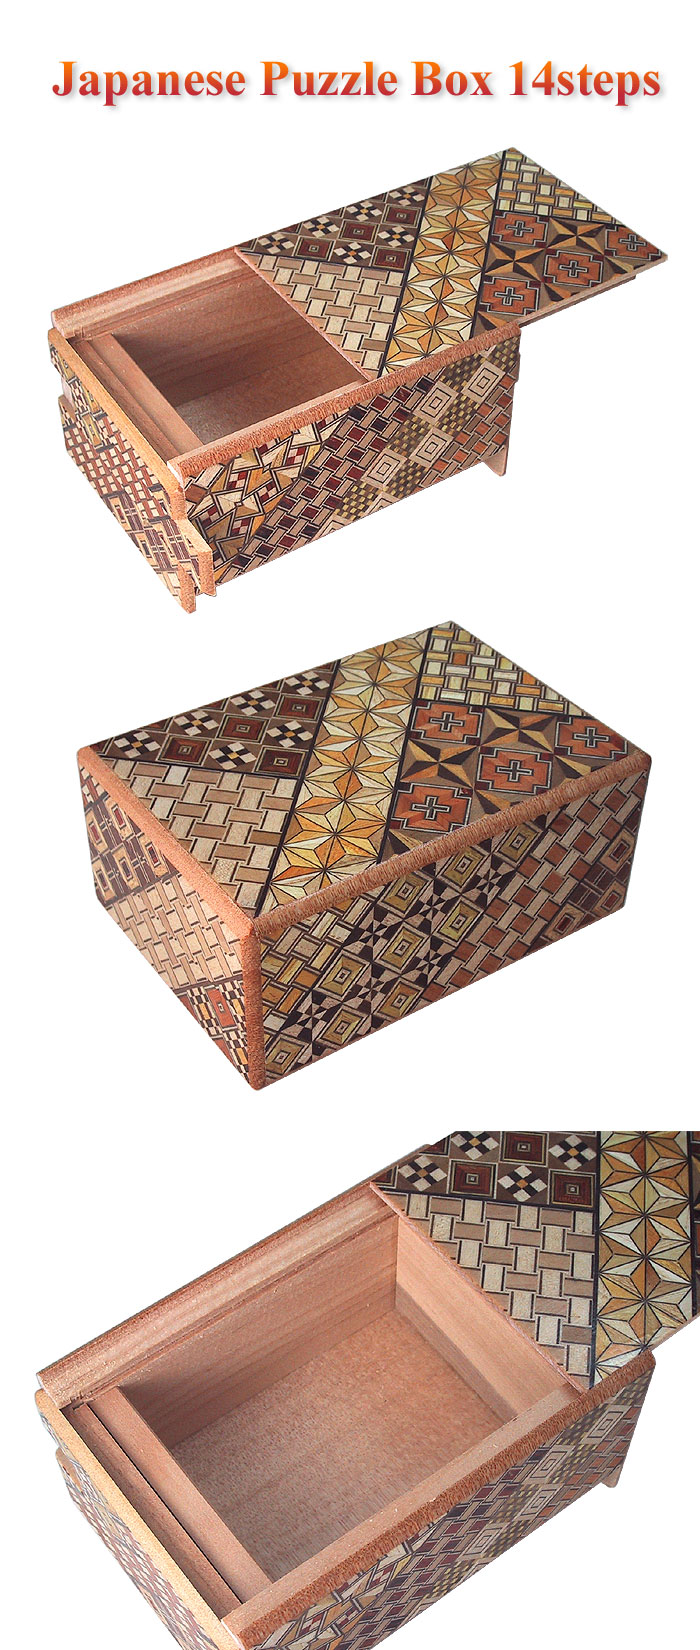 Japanese Puzzle box 14steps